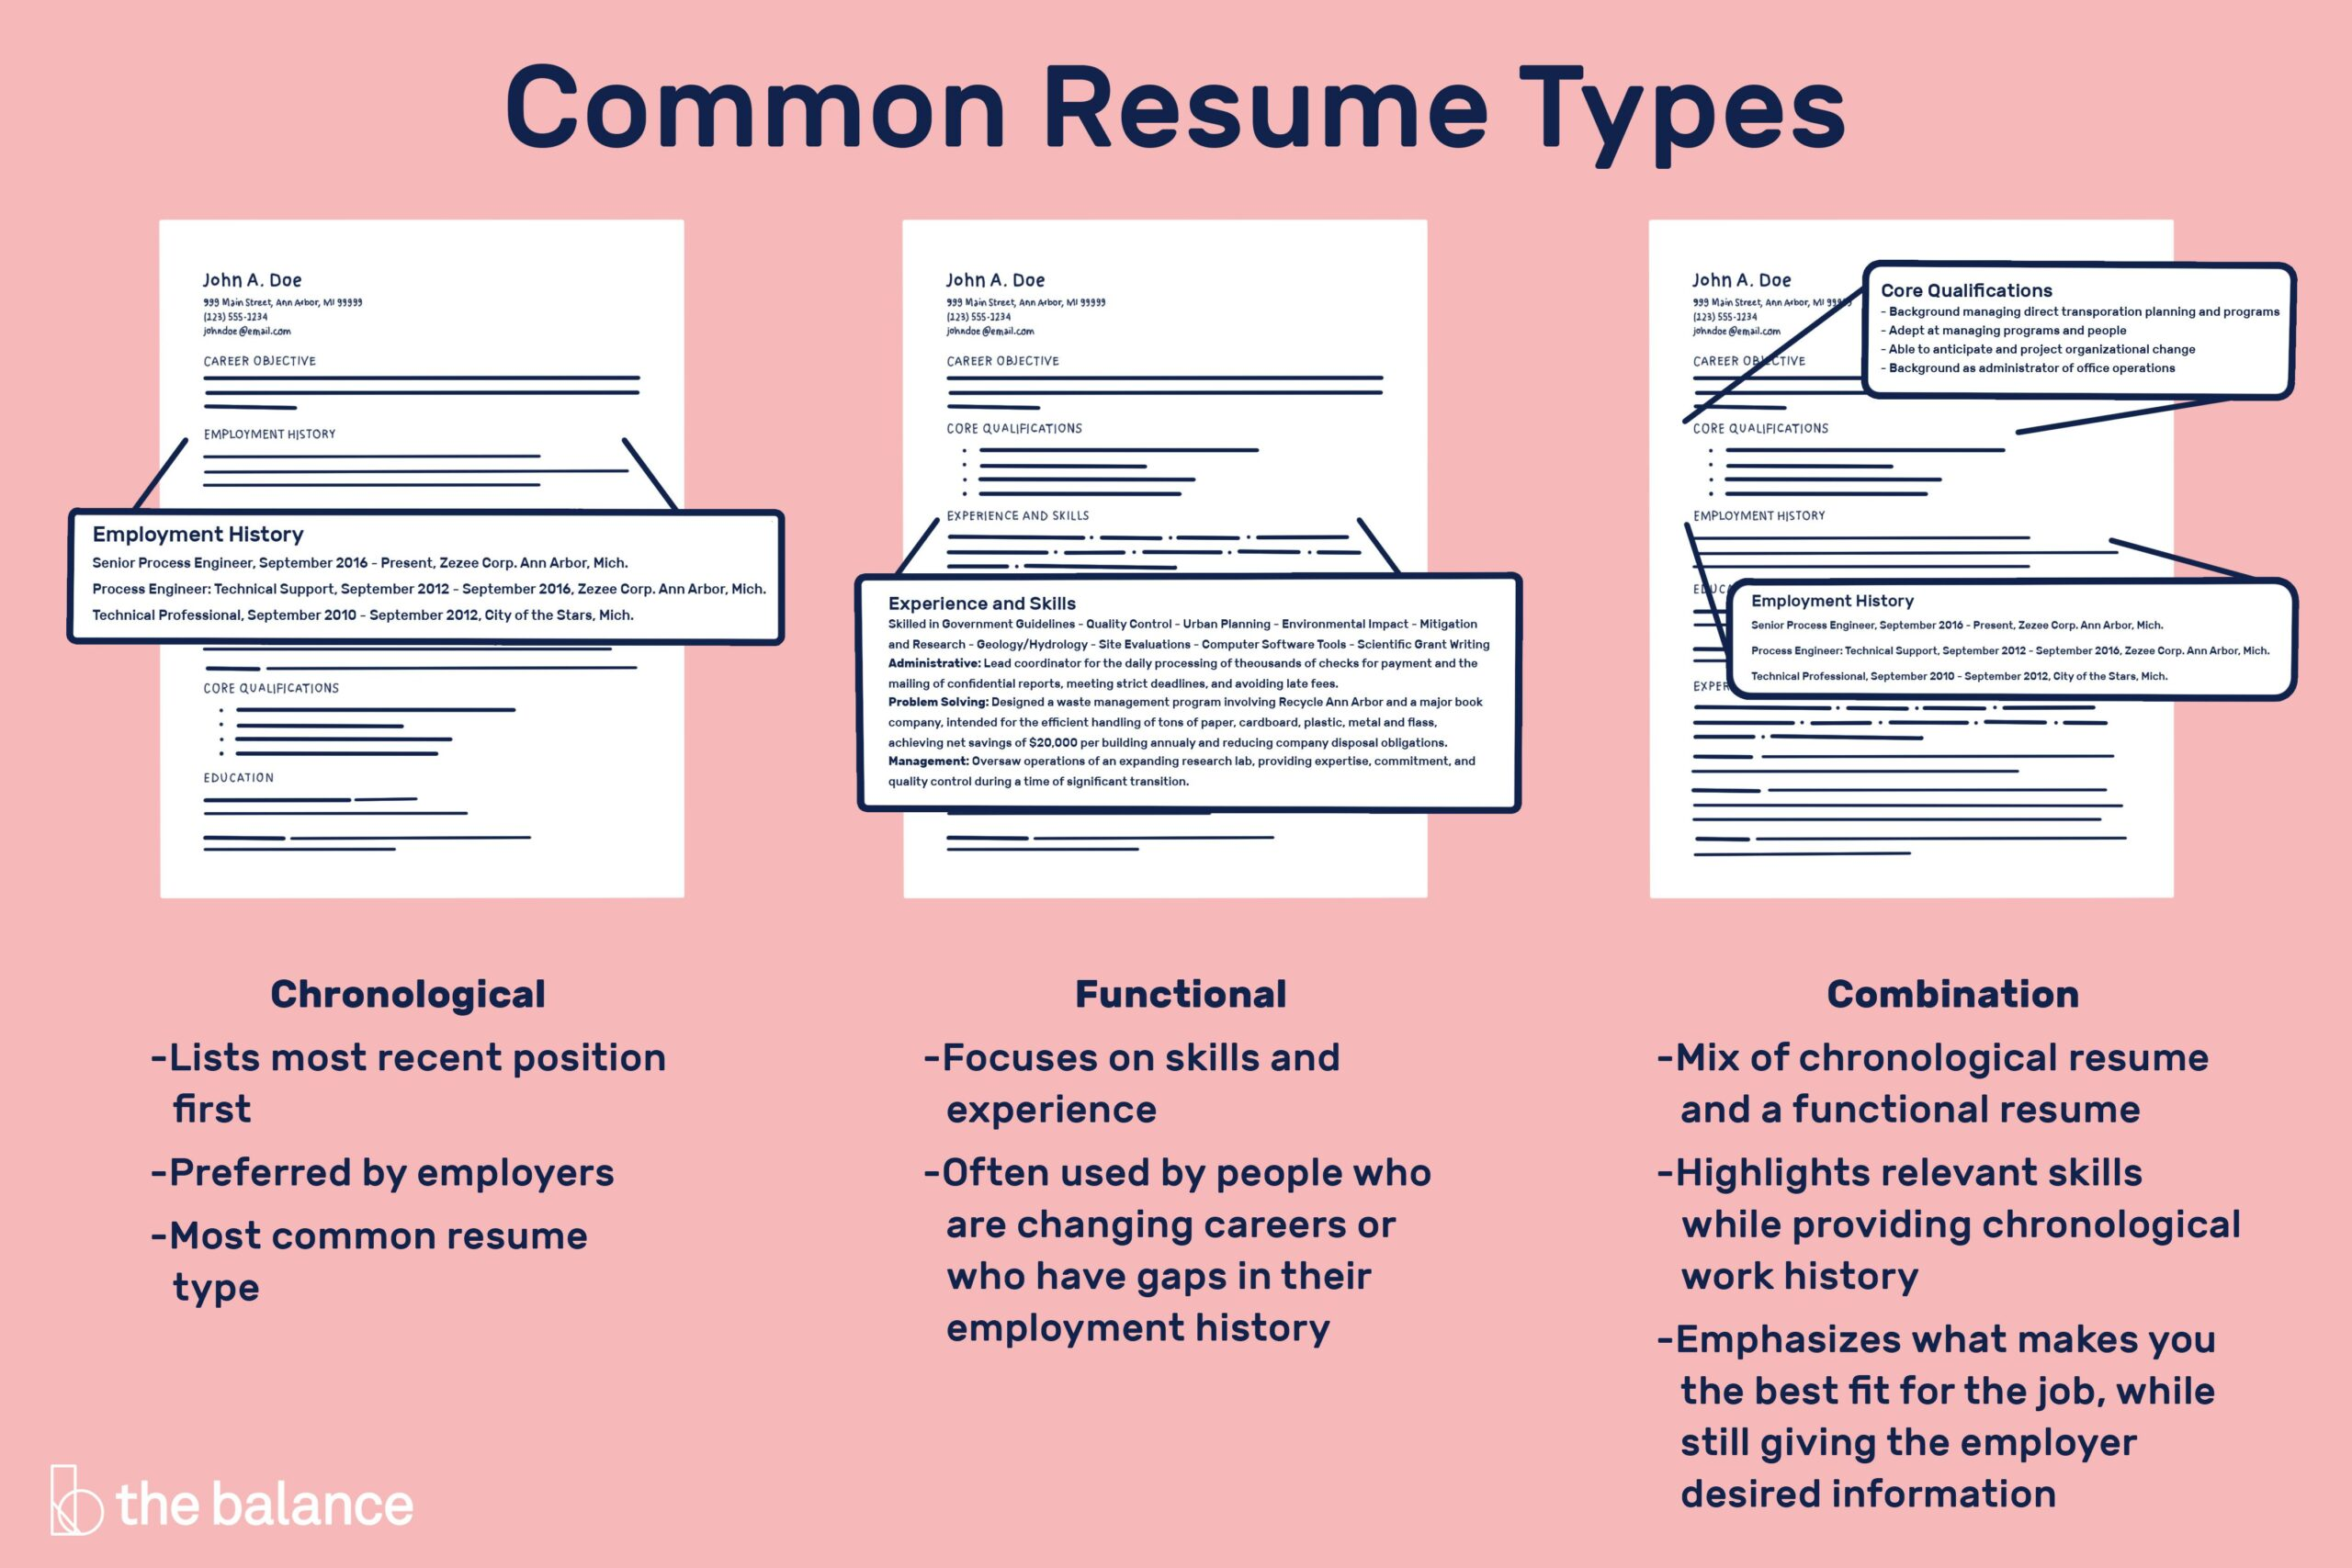 different resume types functional vs chronological combination 2063235v4 ecommerce Resume Functional Resume Vs Chronological Resume